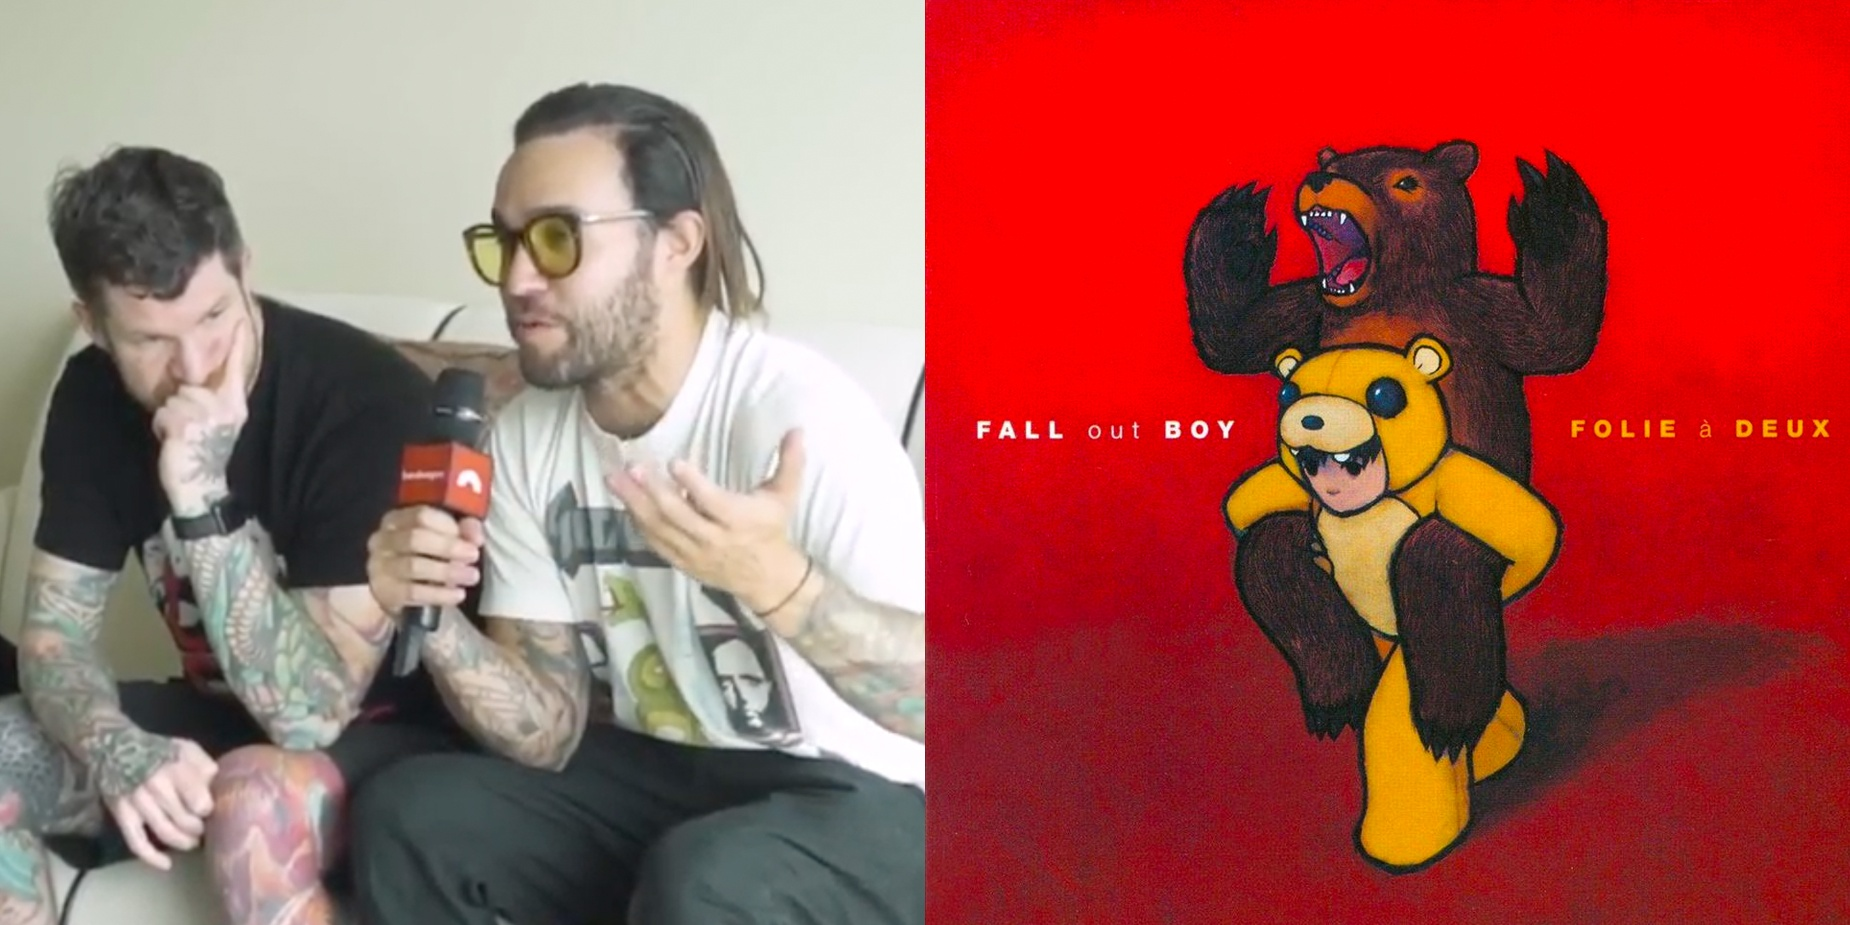 Pete and Andy of Fall Out Boy discuss their album Folie à Deux, which turns 10 this year –watch